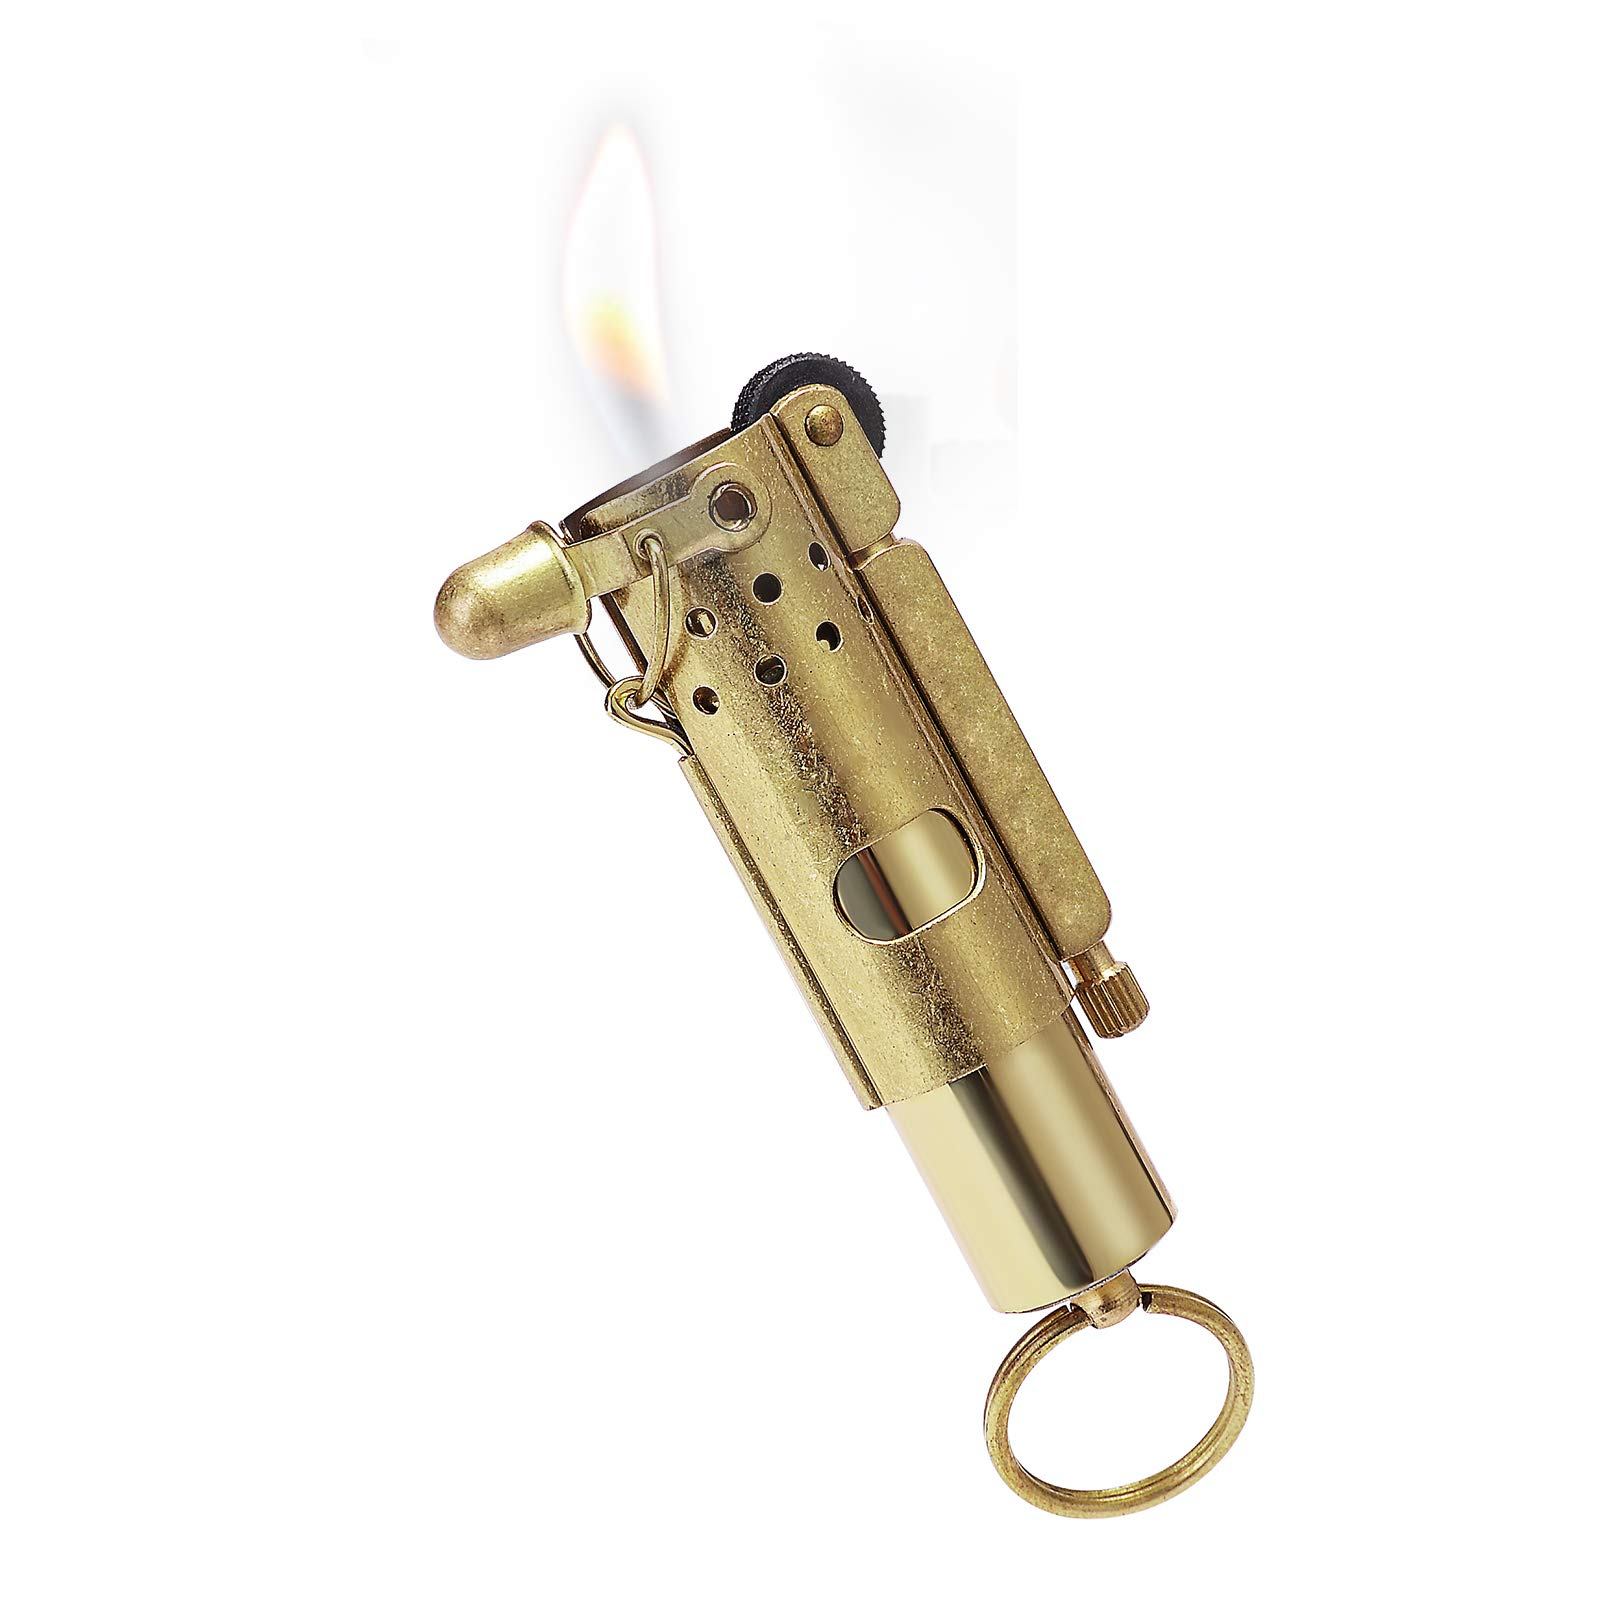 YUSUD Vintage Trench Lighter, Antique Keychain Flint Lighter Fluid Refillable, Cool Pipe Lighters Windproof, Unique Pure Copper Gifts for Men